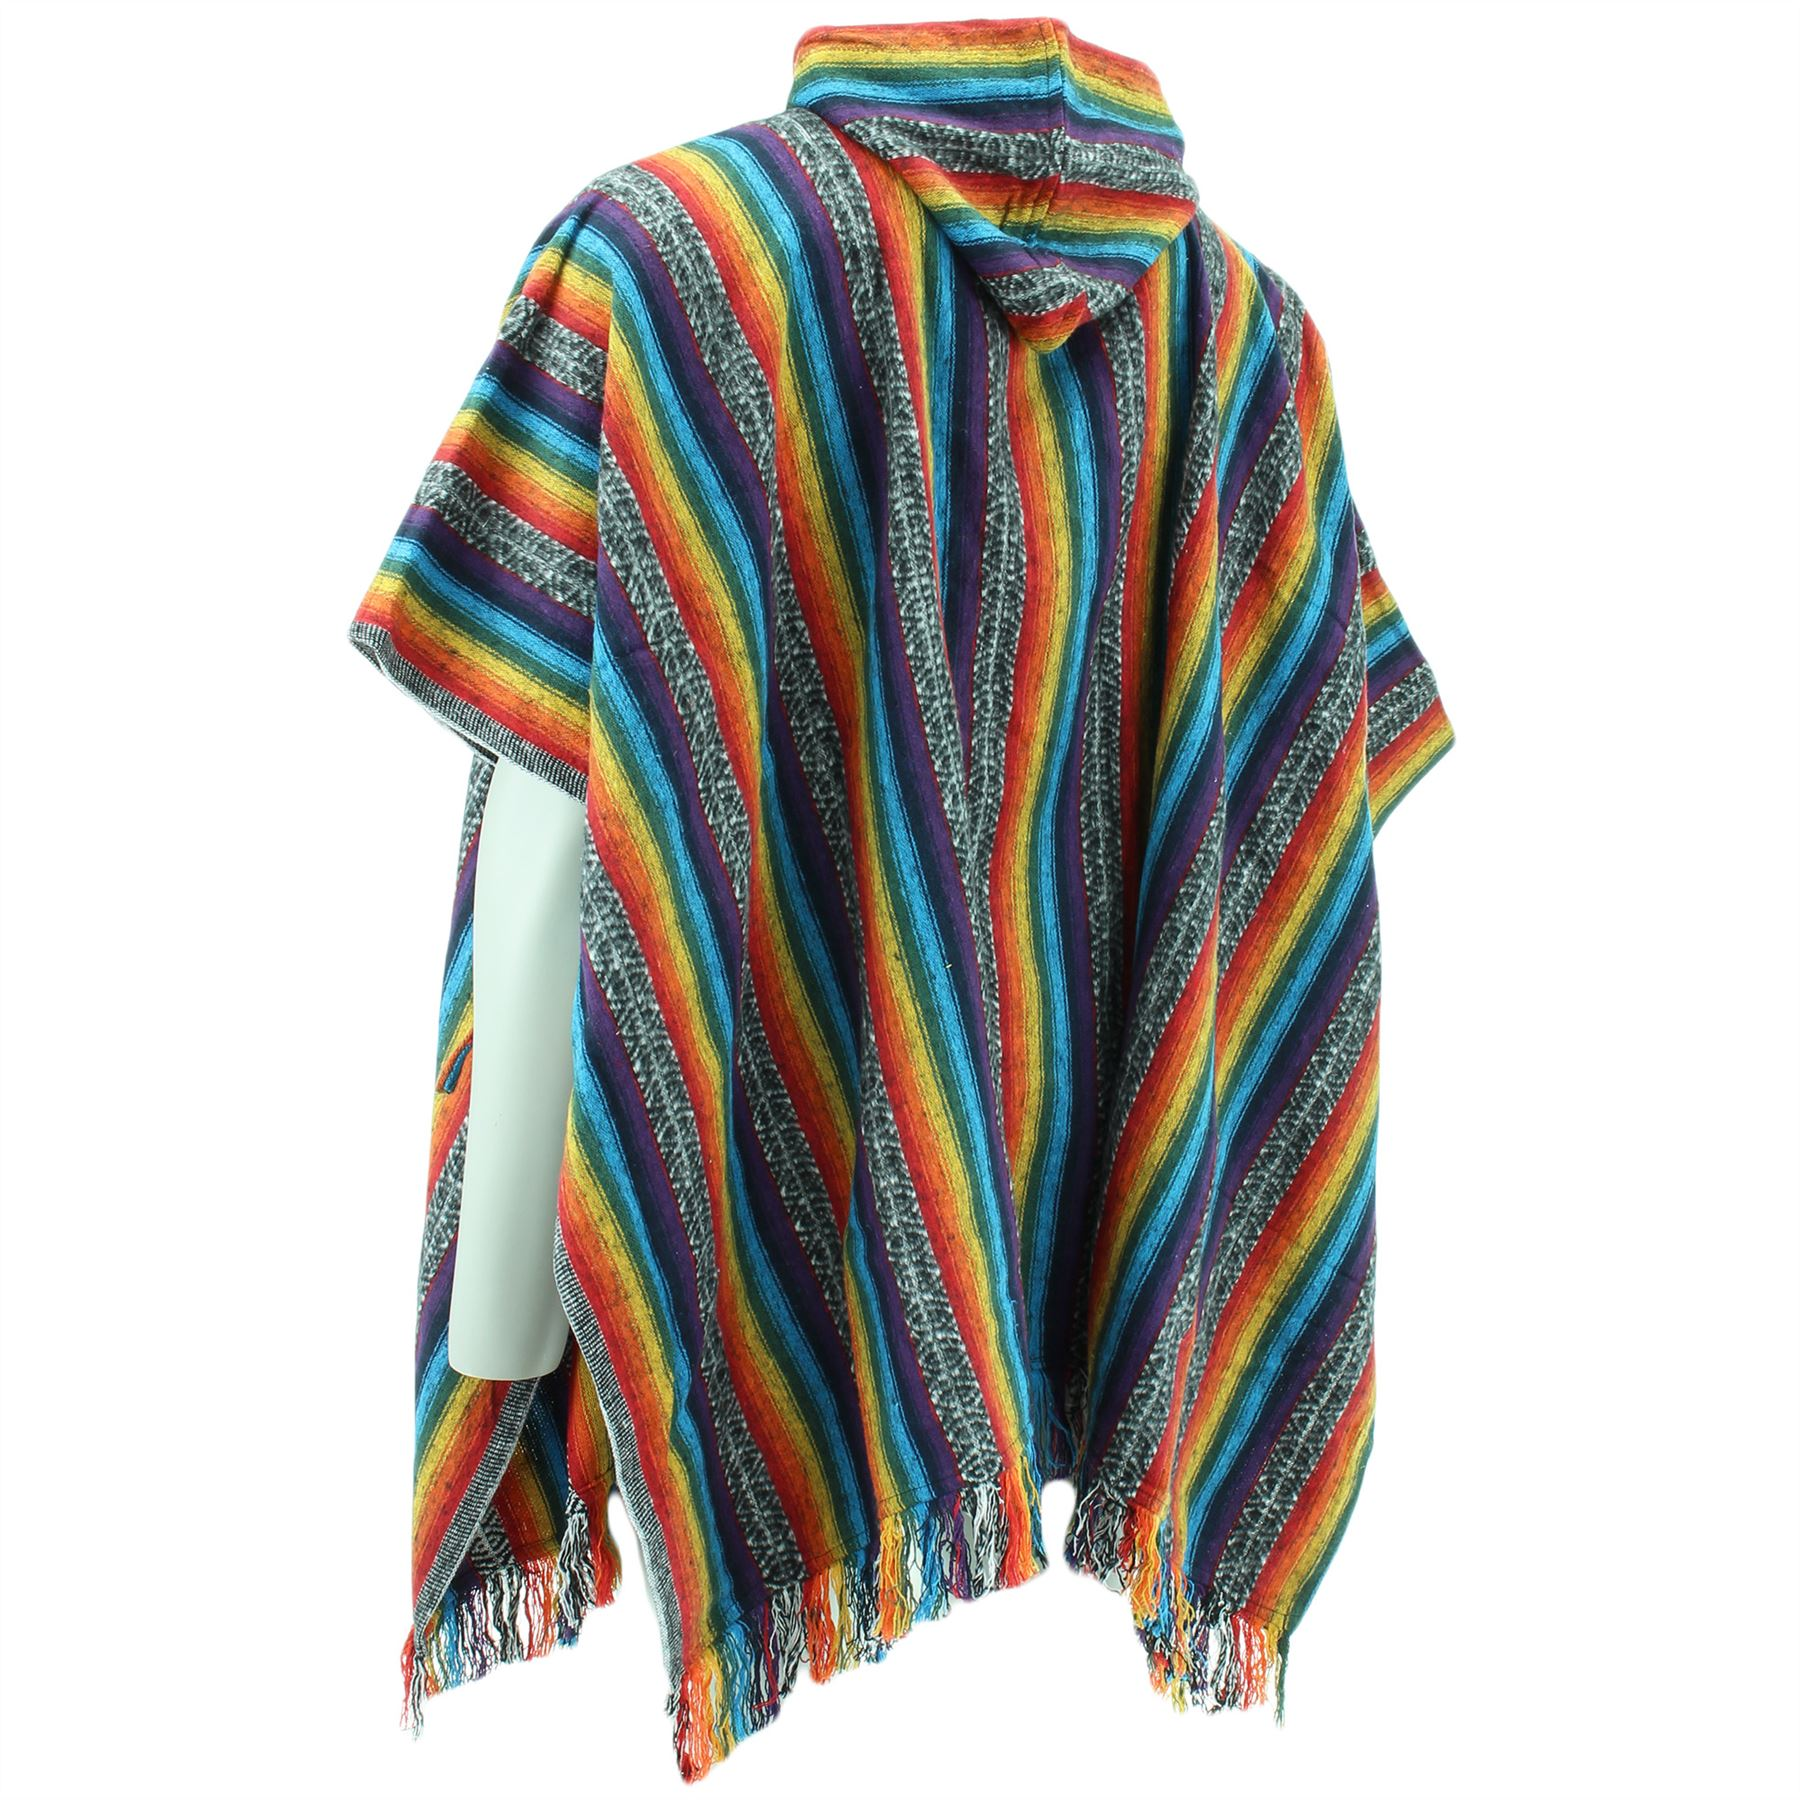 HIPPIE HOODIE PONCHO SHORT ETHNIC MEXICAN STYLE GHERI COTTON FESTIVAL CAMPING